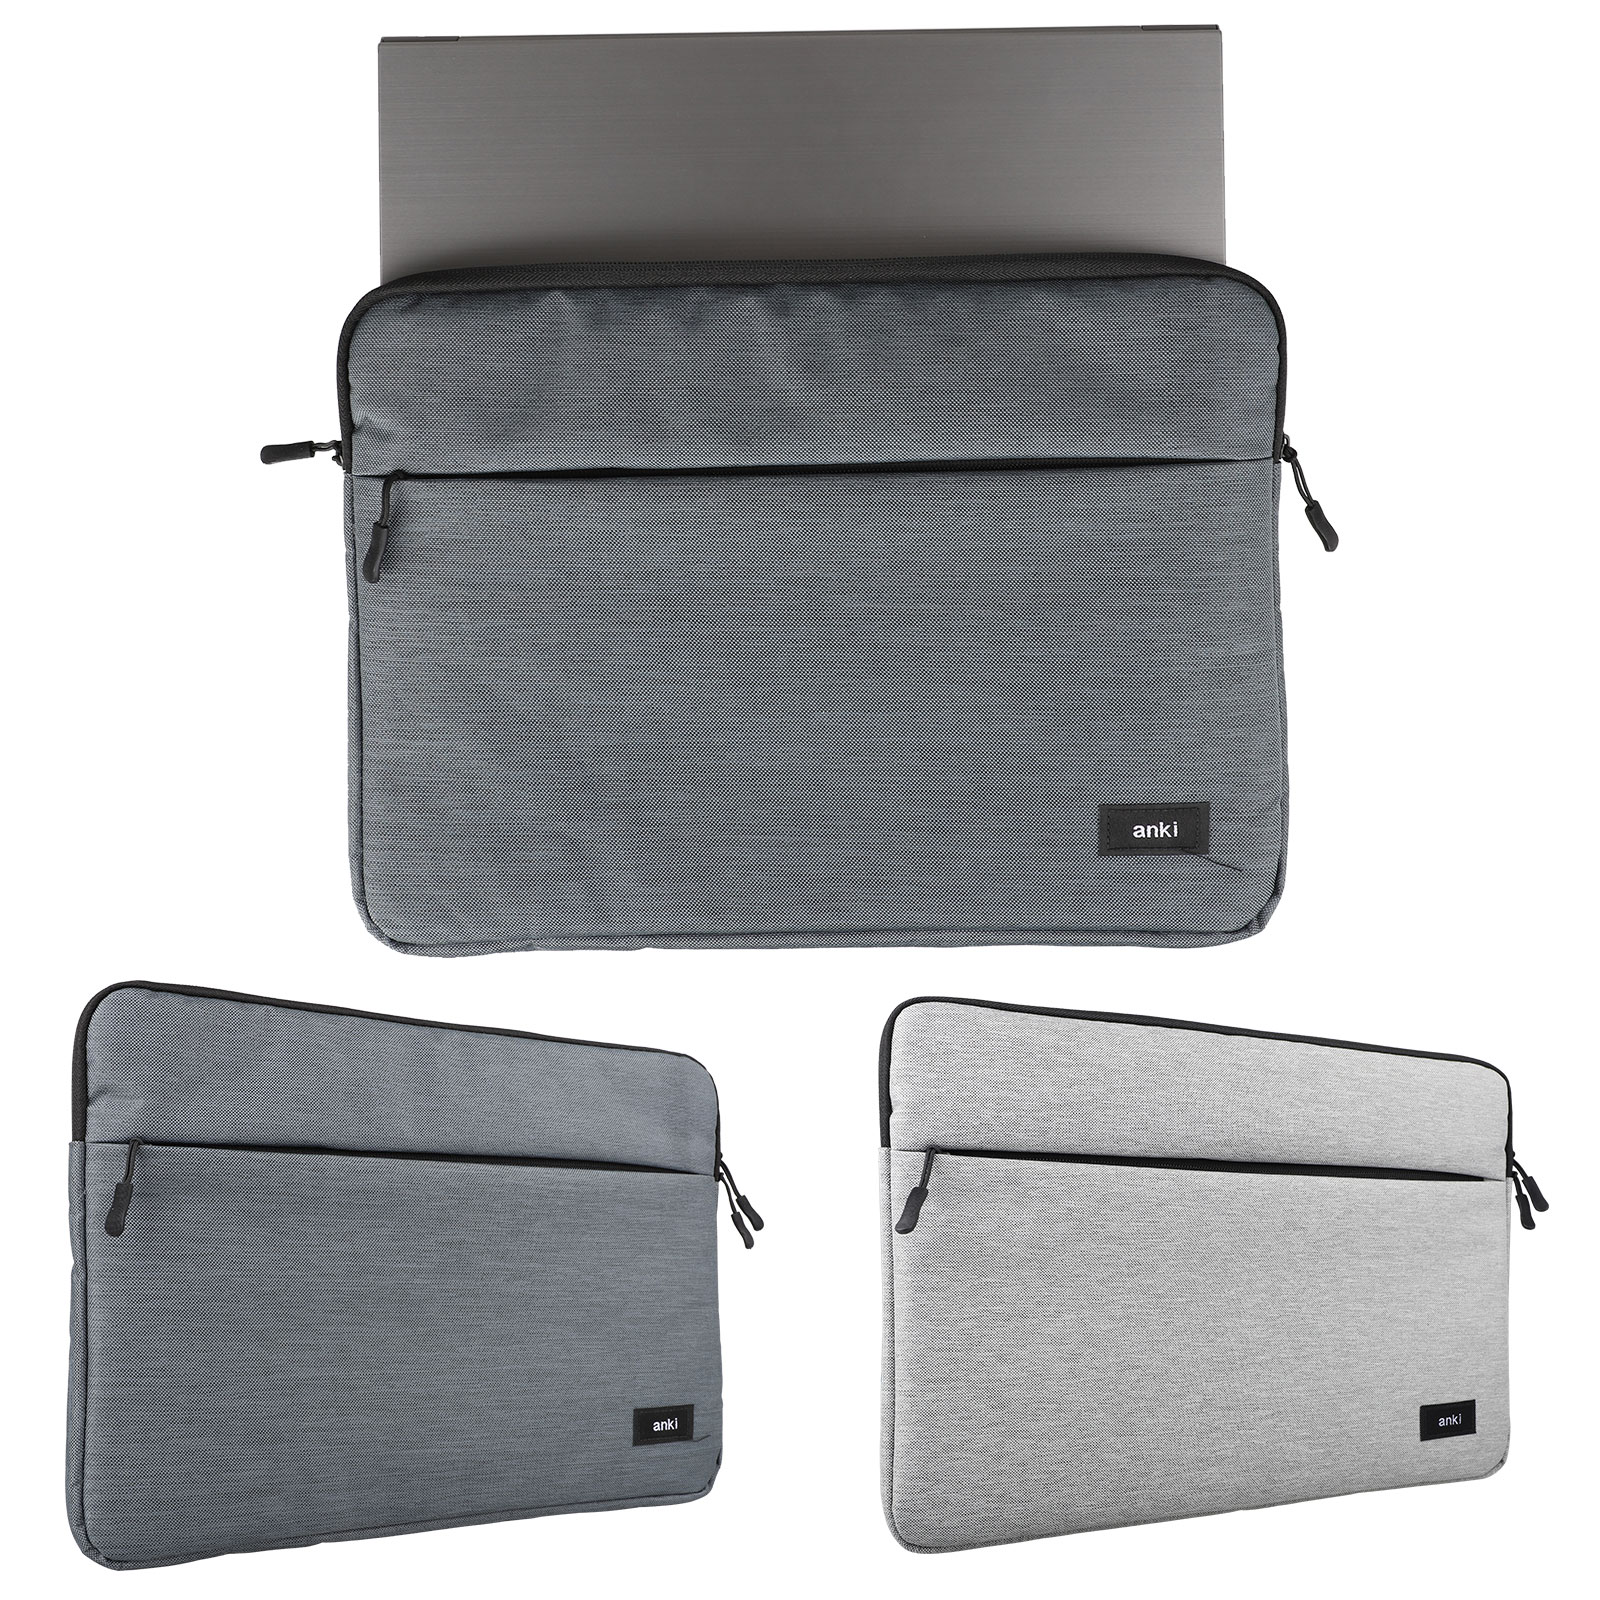 14 15.6inch Laptop Case Bag Soft Cover Sleeve Pouch for HP/D